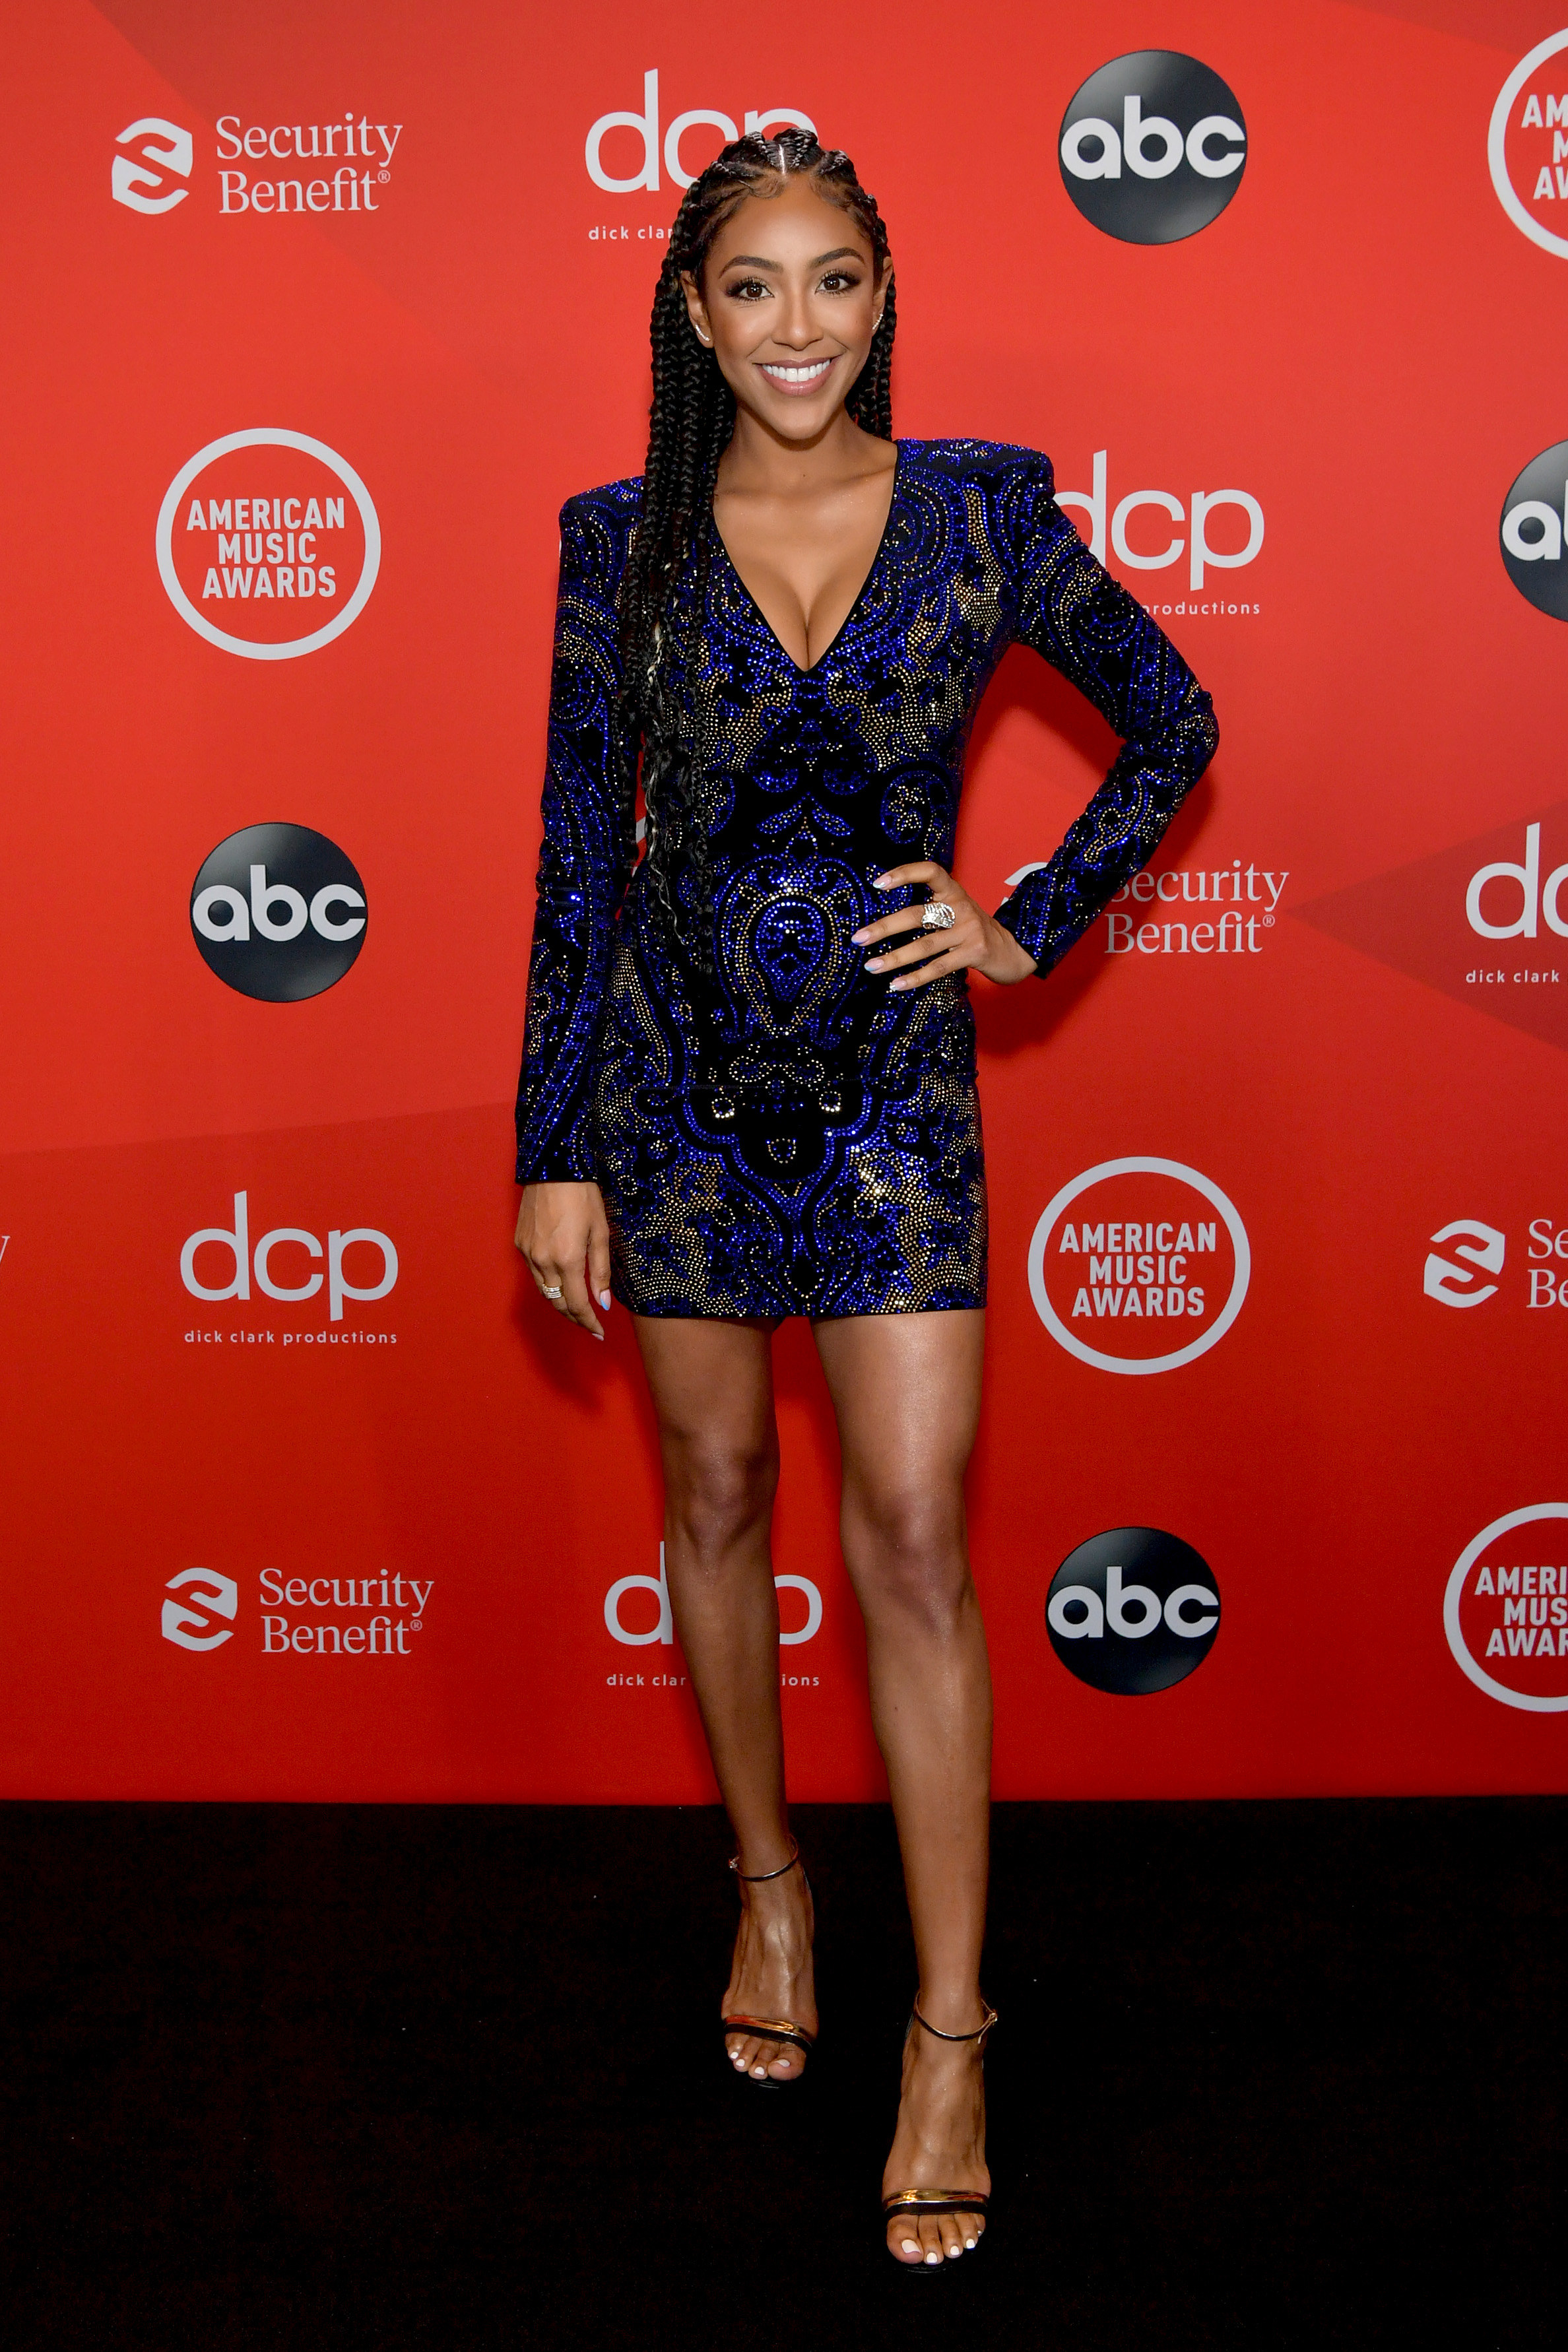 Tayshia Adams attends the 2020 American Music Awards in a short low-cut dress